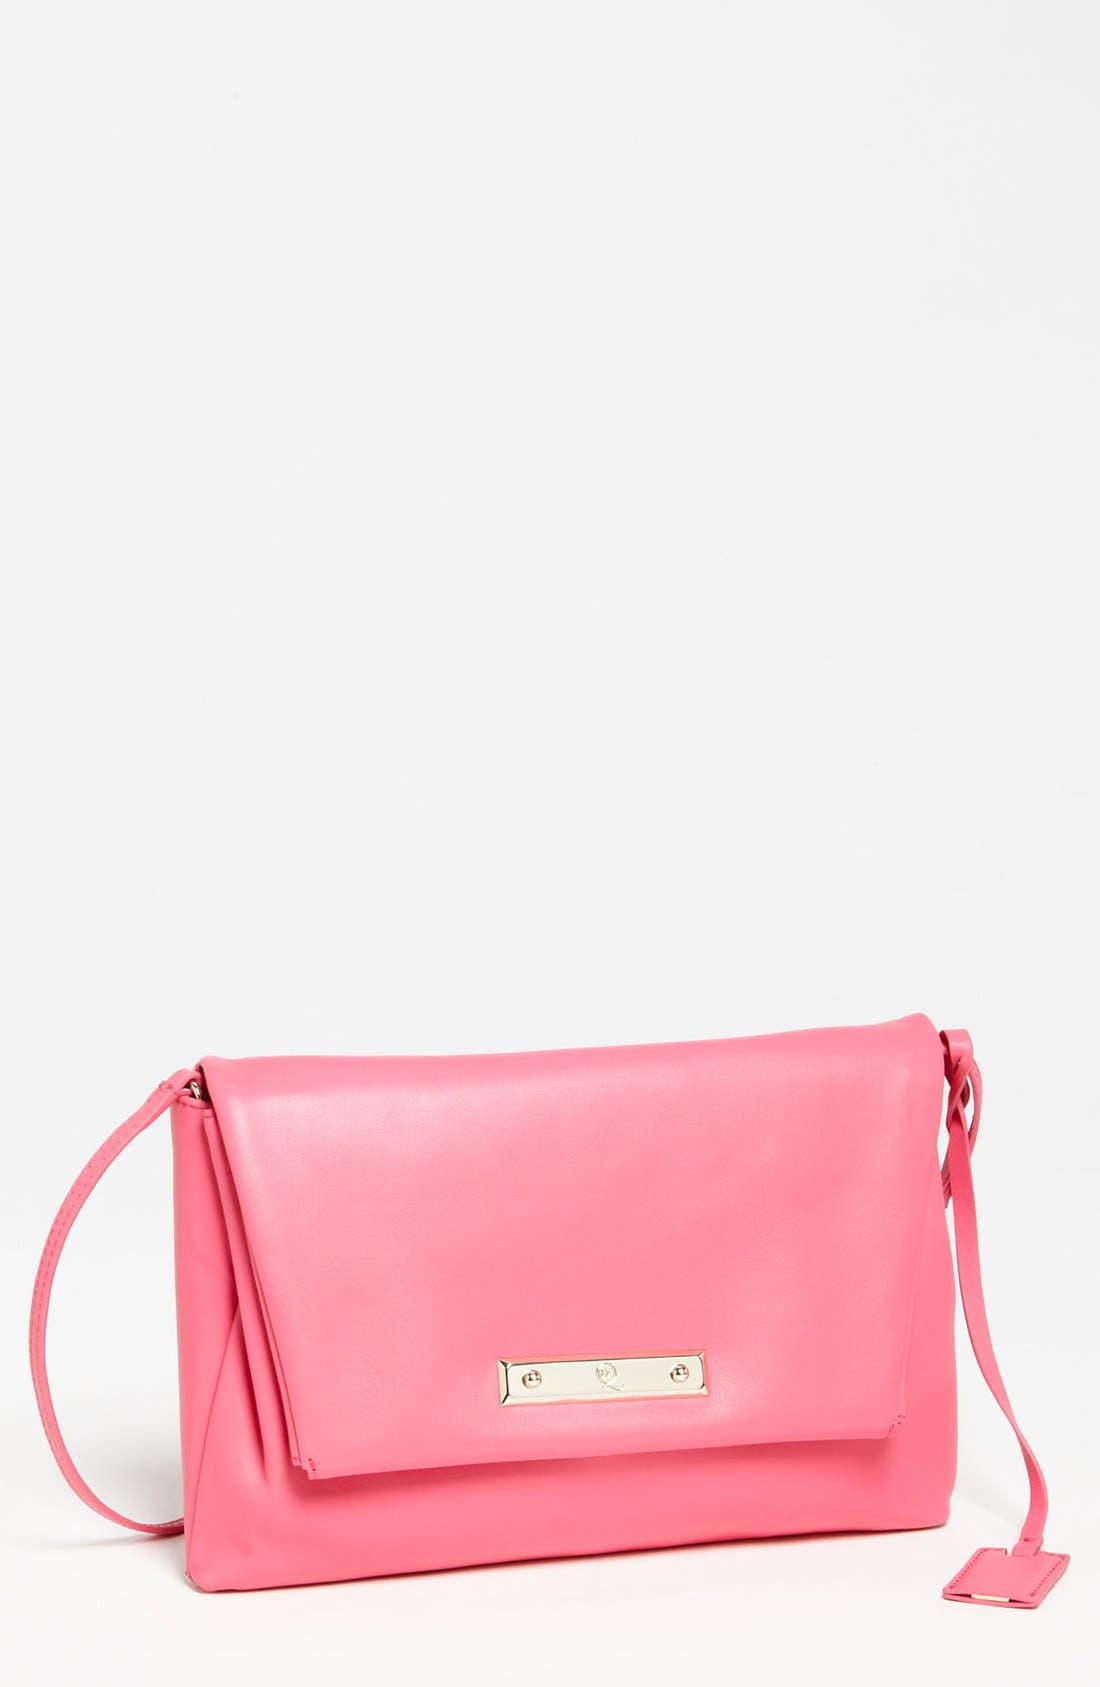 Main Image - McQ by Alexander McQueen 'Albion' Nappa Leather Crossbody Bag, Small